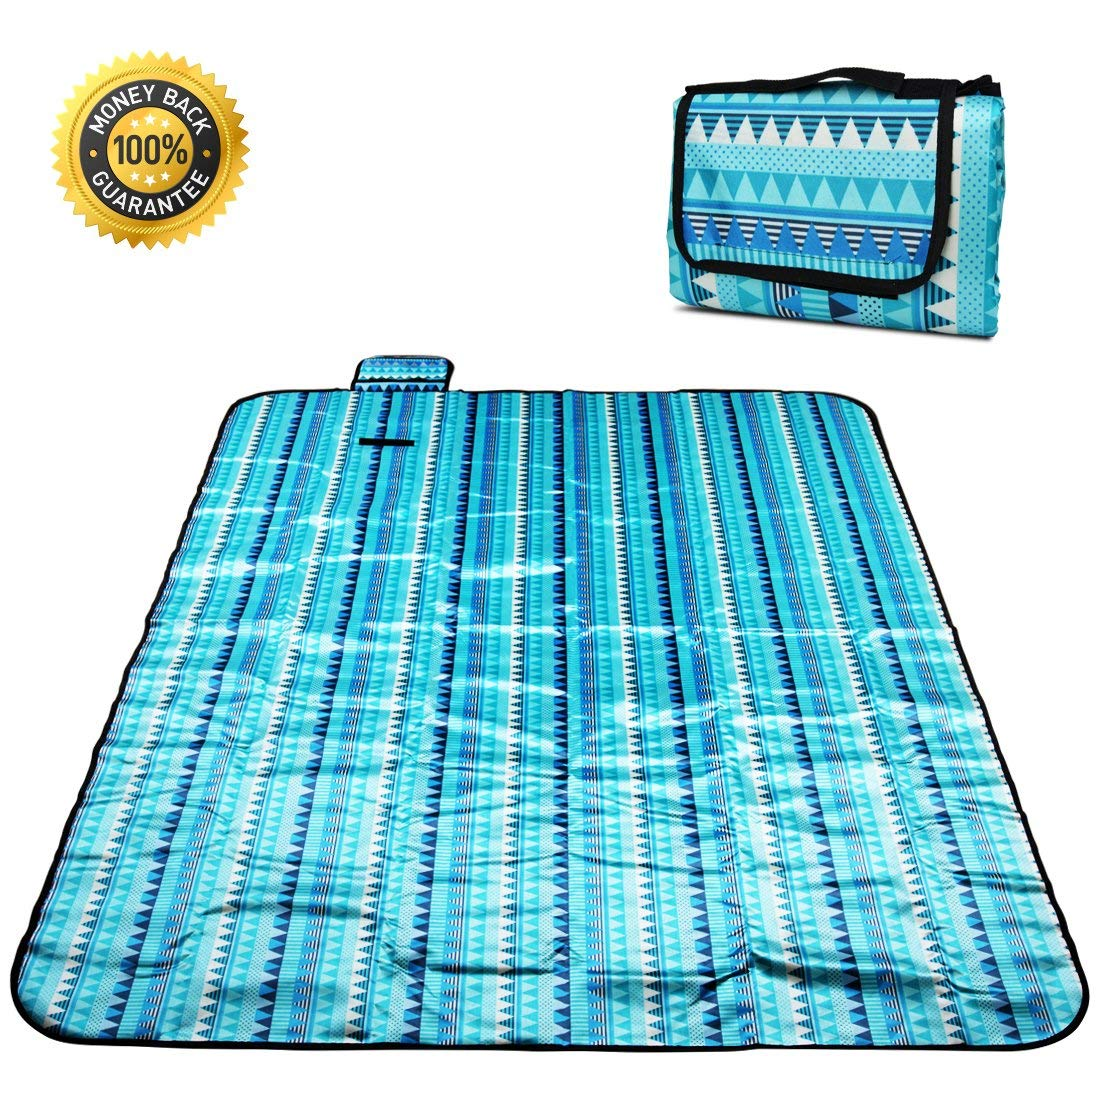 Aimerday Sand Free Beach Blanket 80″x 60″ Oversized Outdoor Family Picnic Blanket Fits 6+ Adults Waterproof Compact Sand Proof Beach Mat for Summer Beach, Travel, Hiking, Camping, Festivals